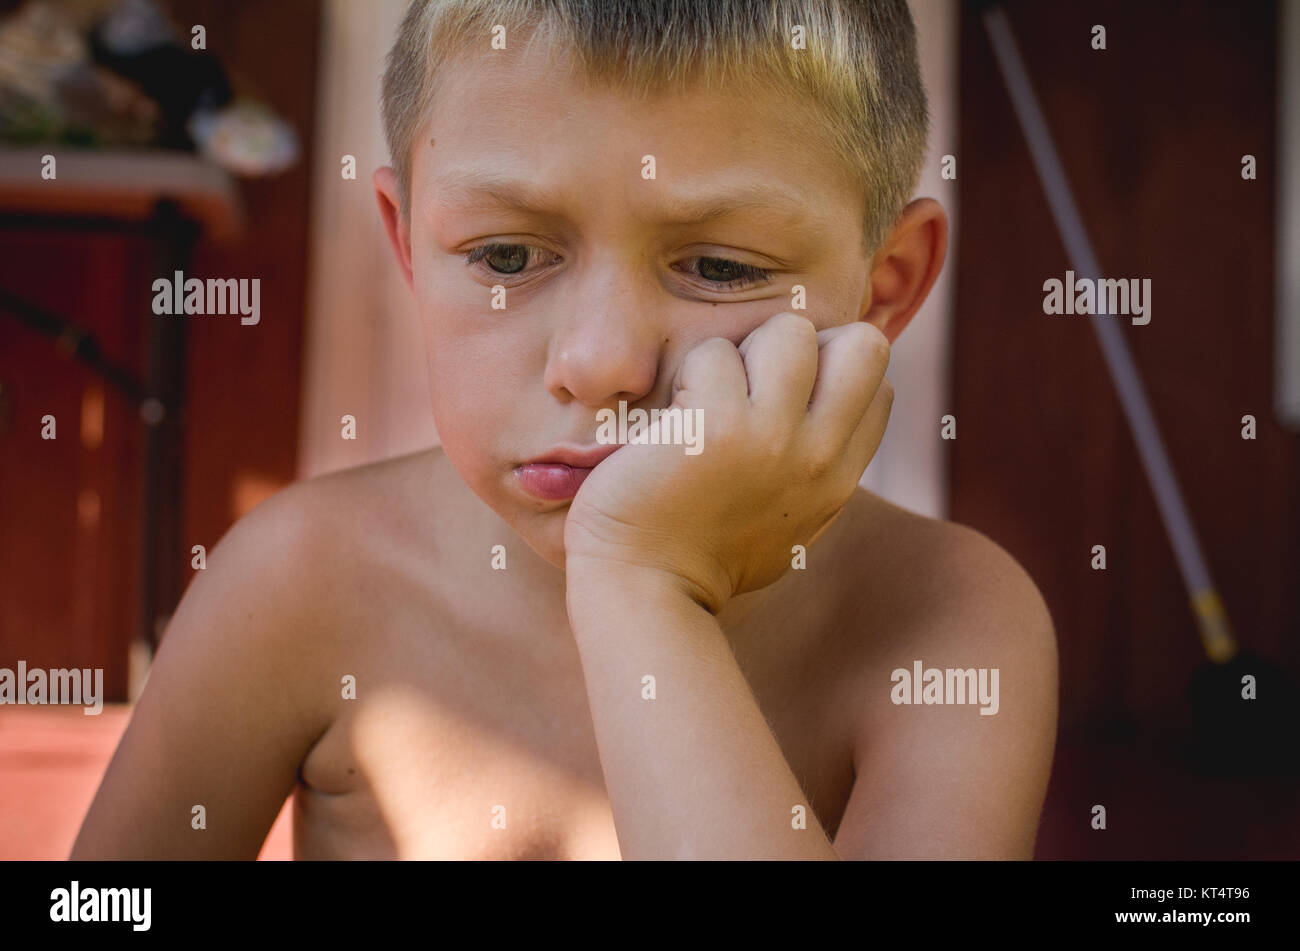 A young boy looking sad. - Stock Image